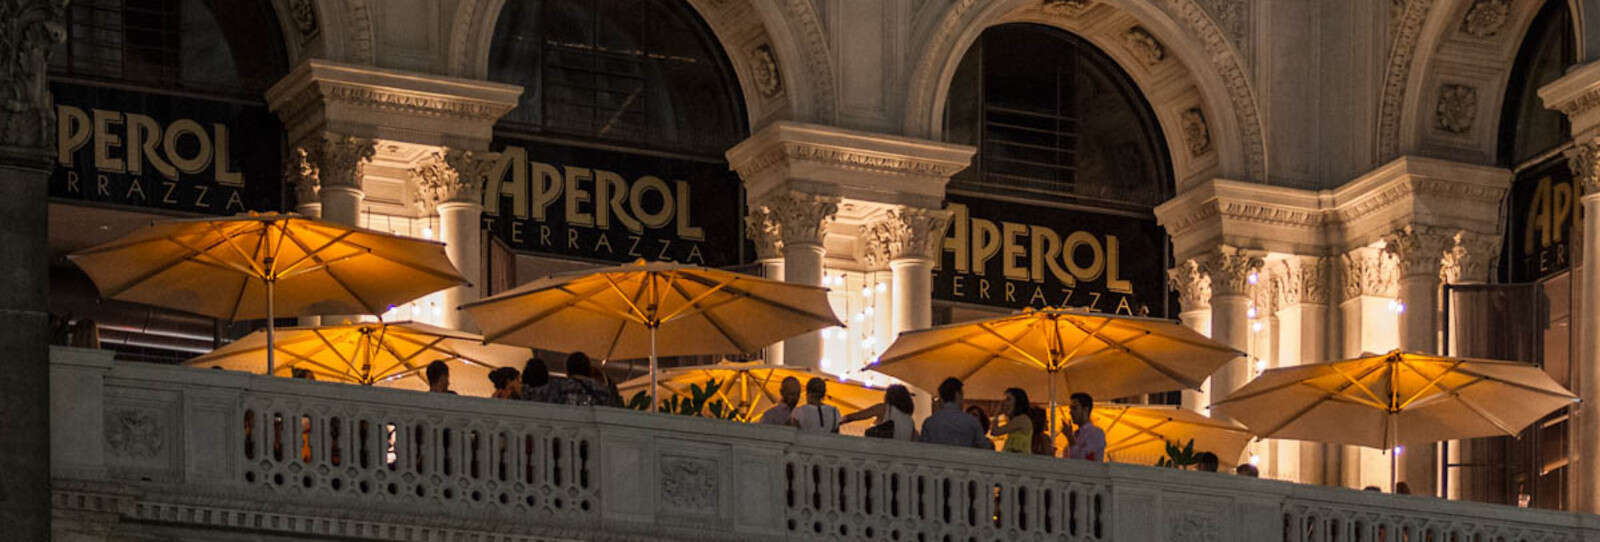 Terrazza Aperol: looking out at the Duomo di Milano | Autogrill